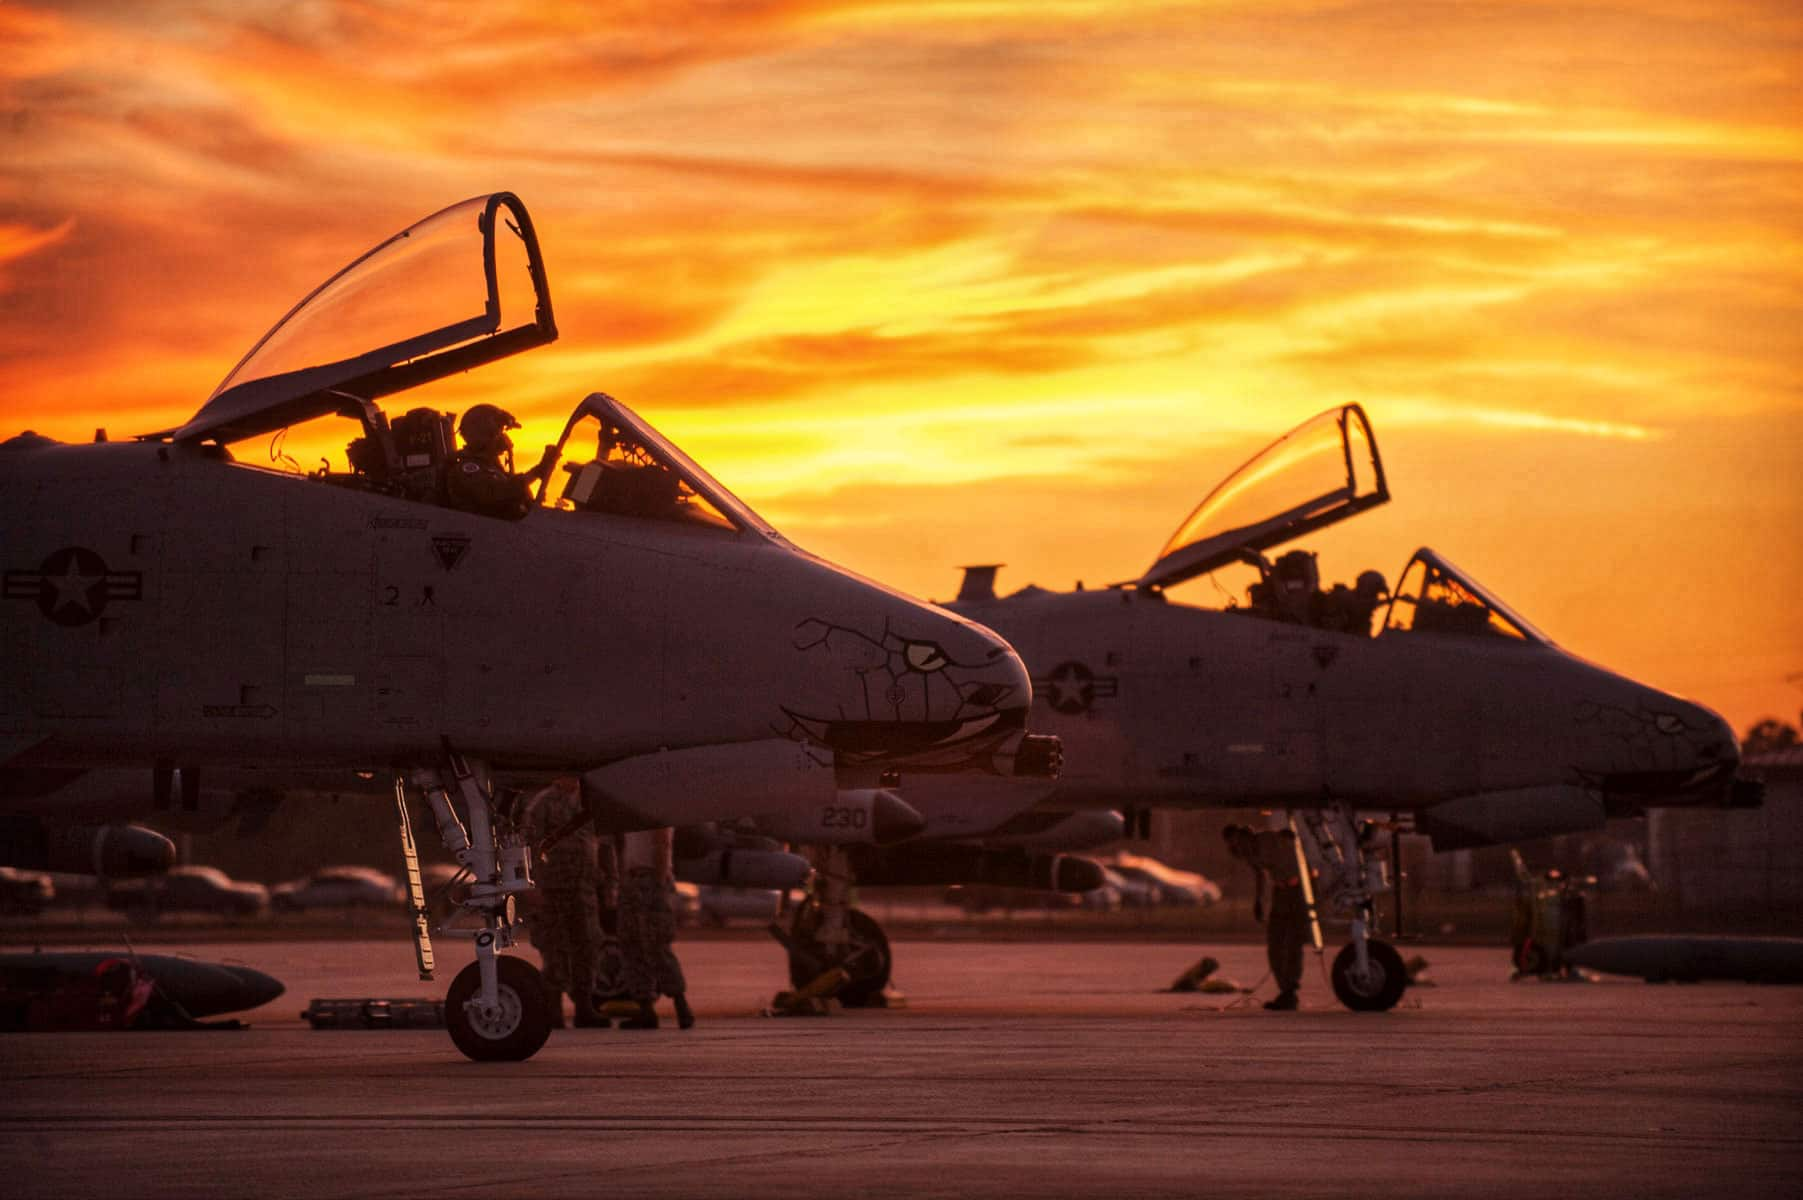 A10 Warthog pilots from the 163rd Fighter Squadron, and Aircraft Maintenance Crew Chiefs from the 122nd Fighter Wing, Fort Wayne, Indiana, prepare for takeoff during Operation Guardian Blitz, Jan 23, 2018, at MacDill Air Force Base, Florida.